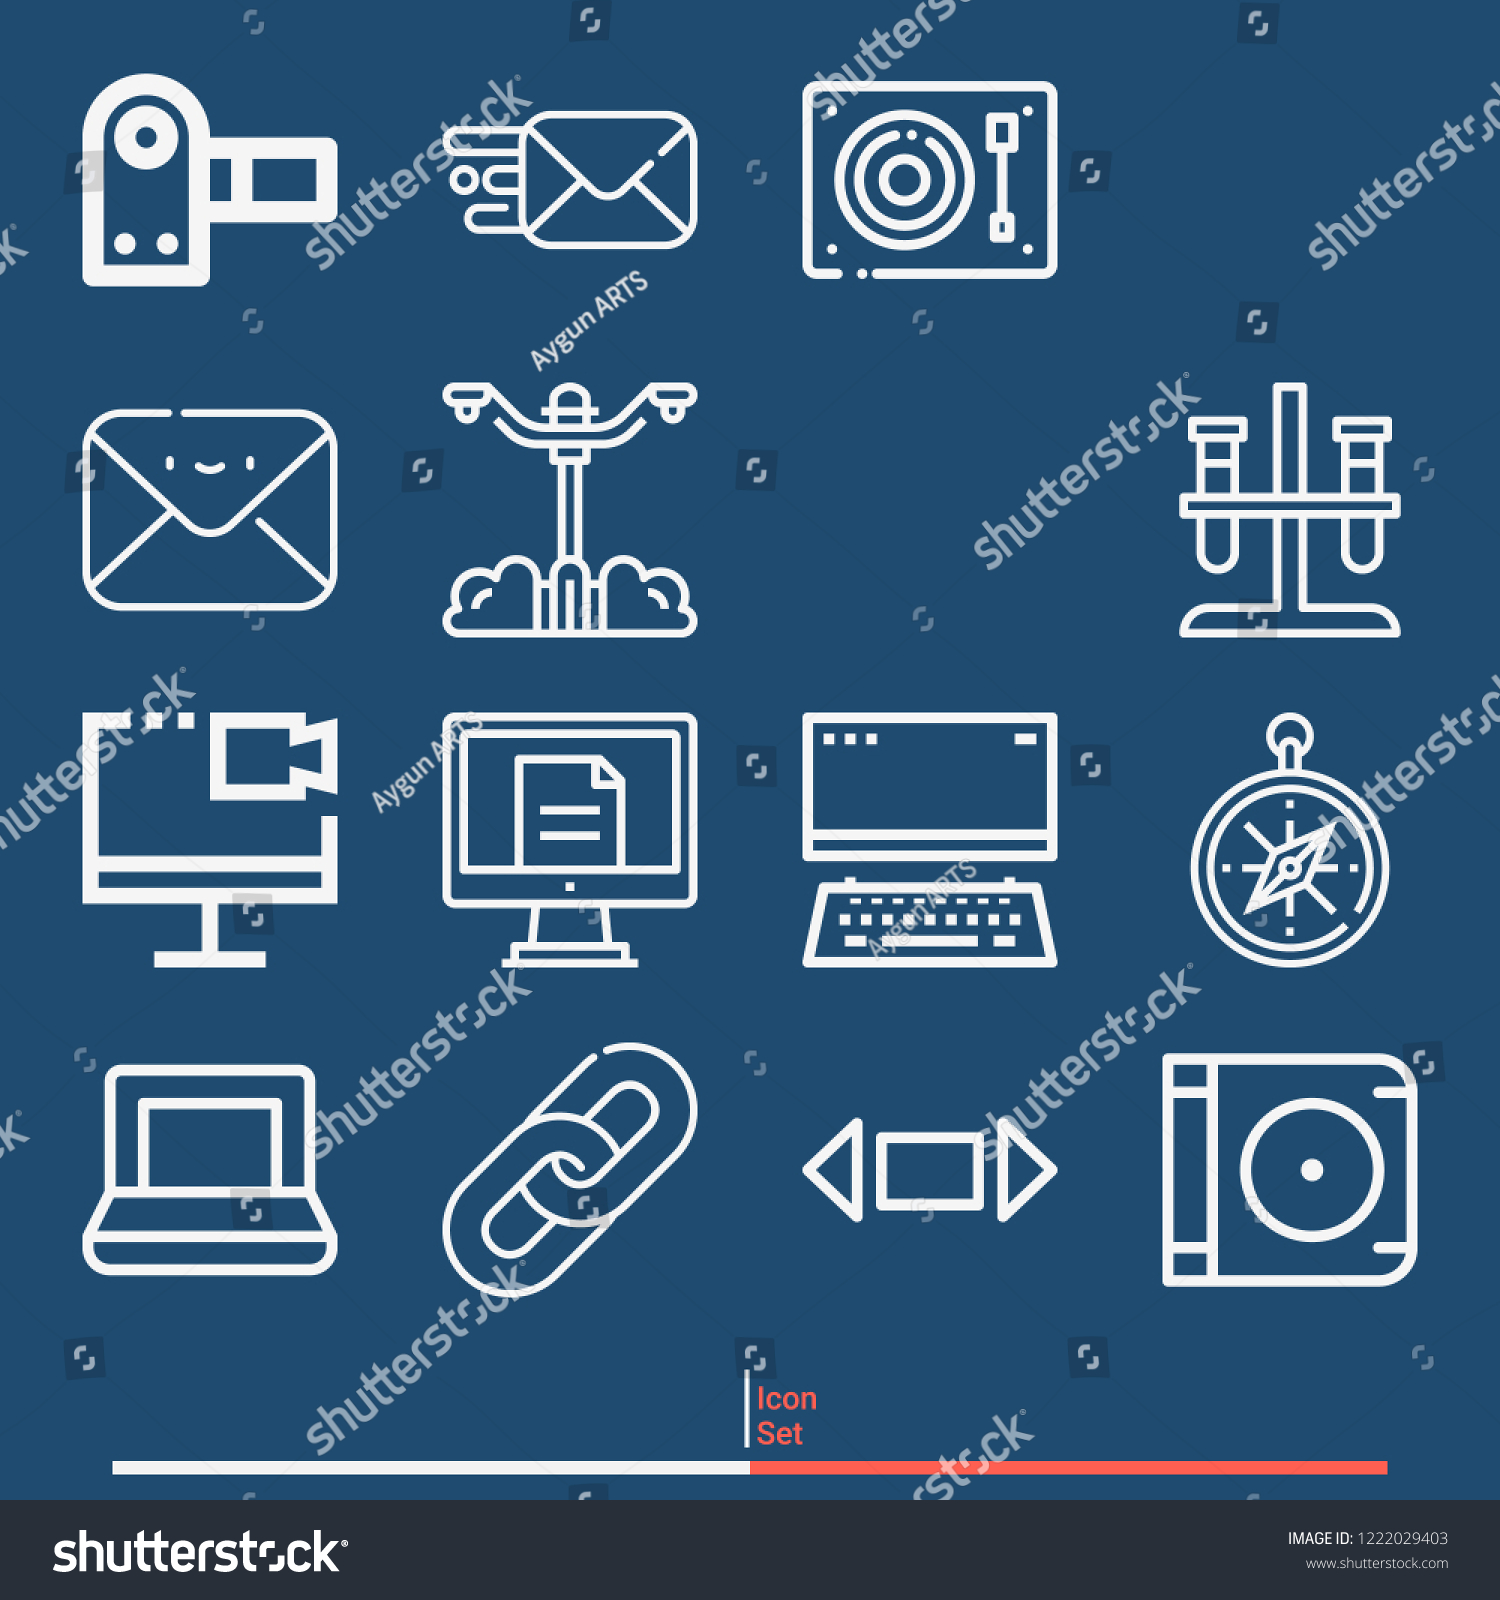 compass panorama lamp post laptop camcorder stock vector (royalty Dell E6410 Laptop Diagram compass, panorama, lamp post, laptop, camcorder, computer, test tube, message, switch, links icon set suitable for info graphics, websites and print media